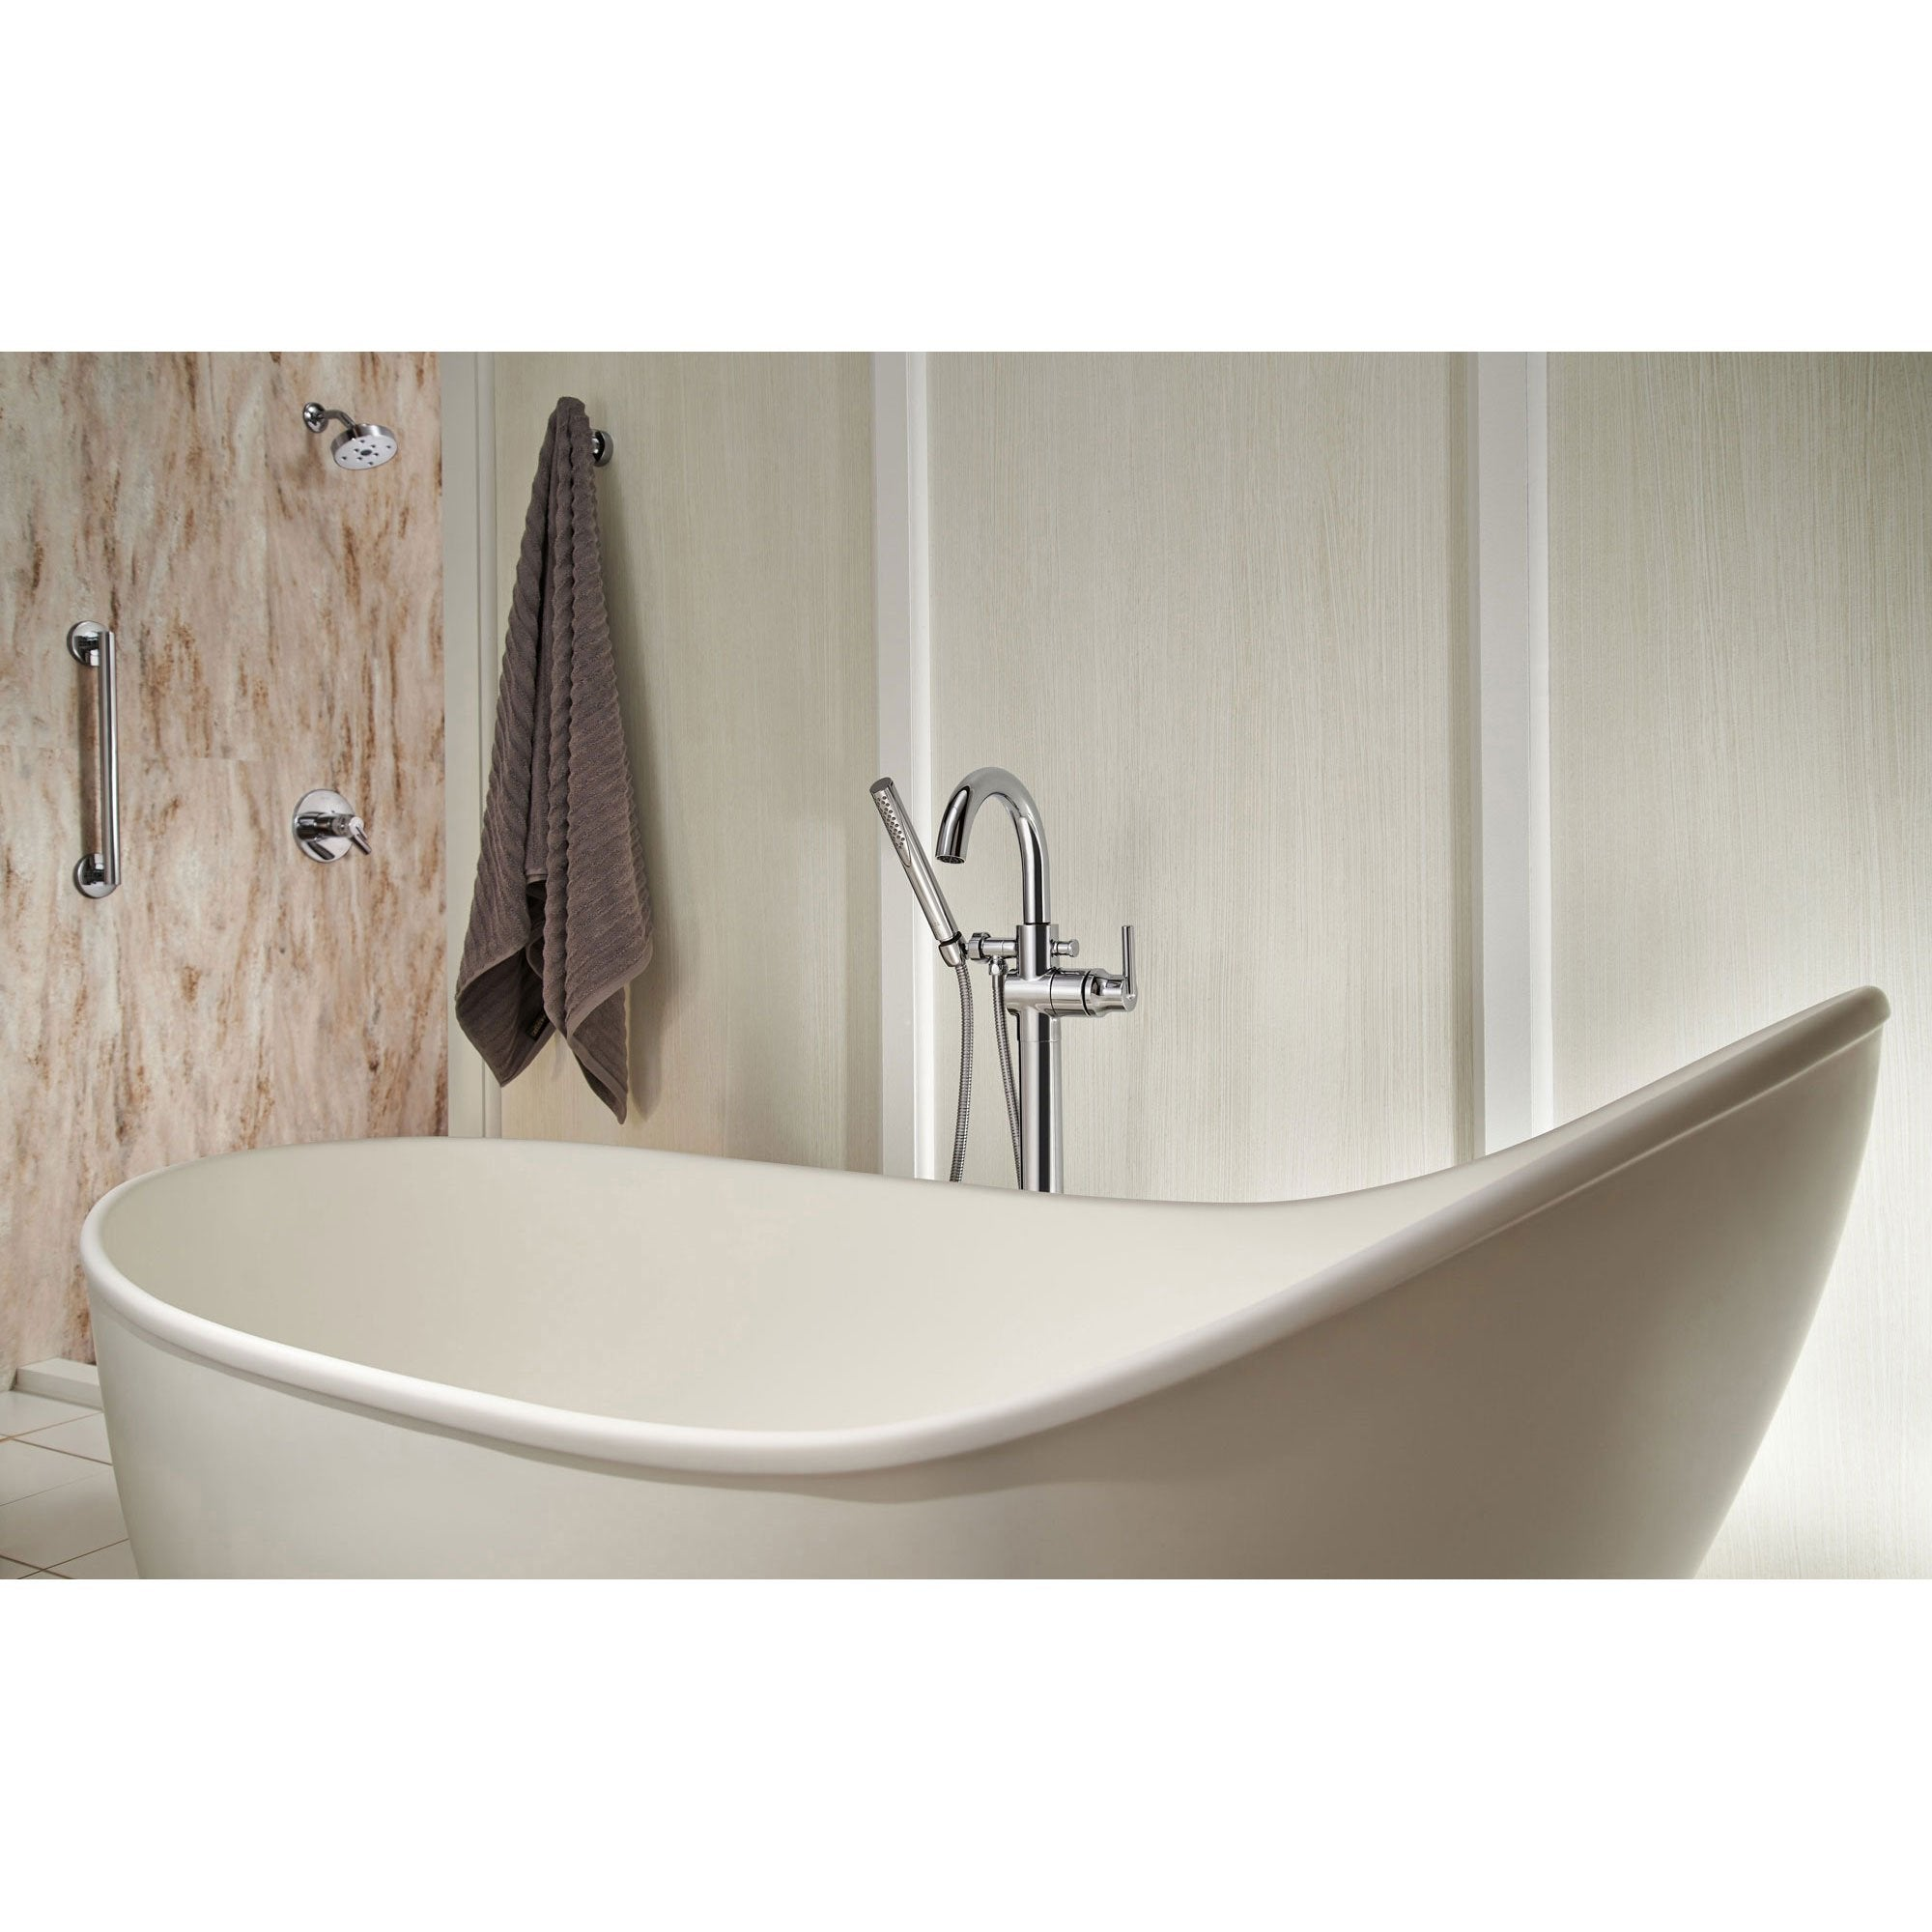 filler single pin bn with floors toto faucet handle freestanding mount tub floor